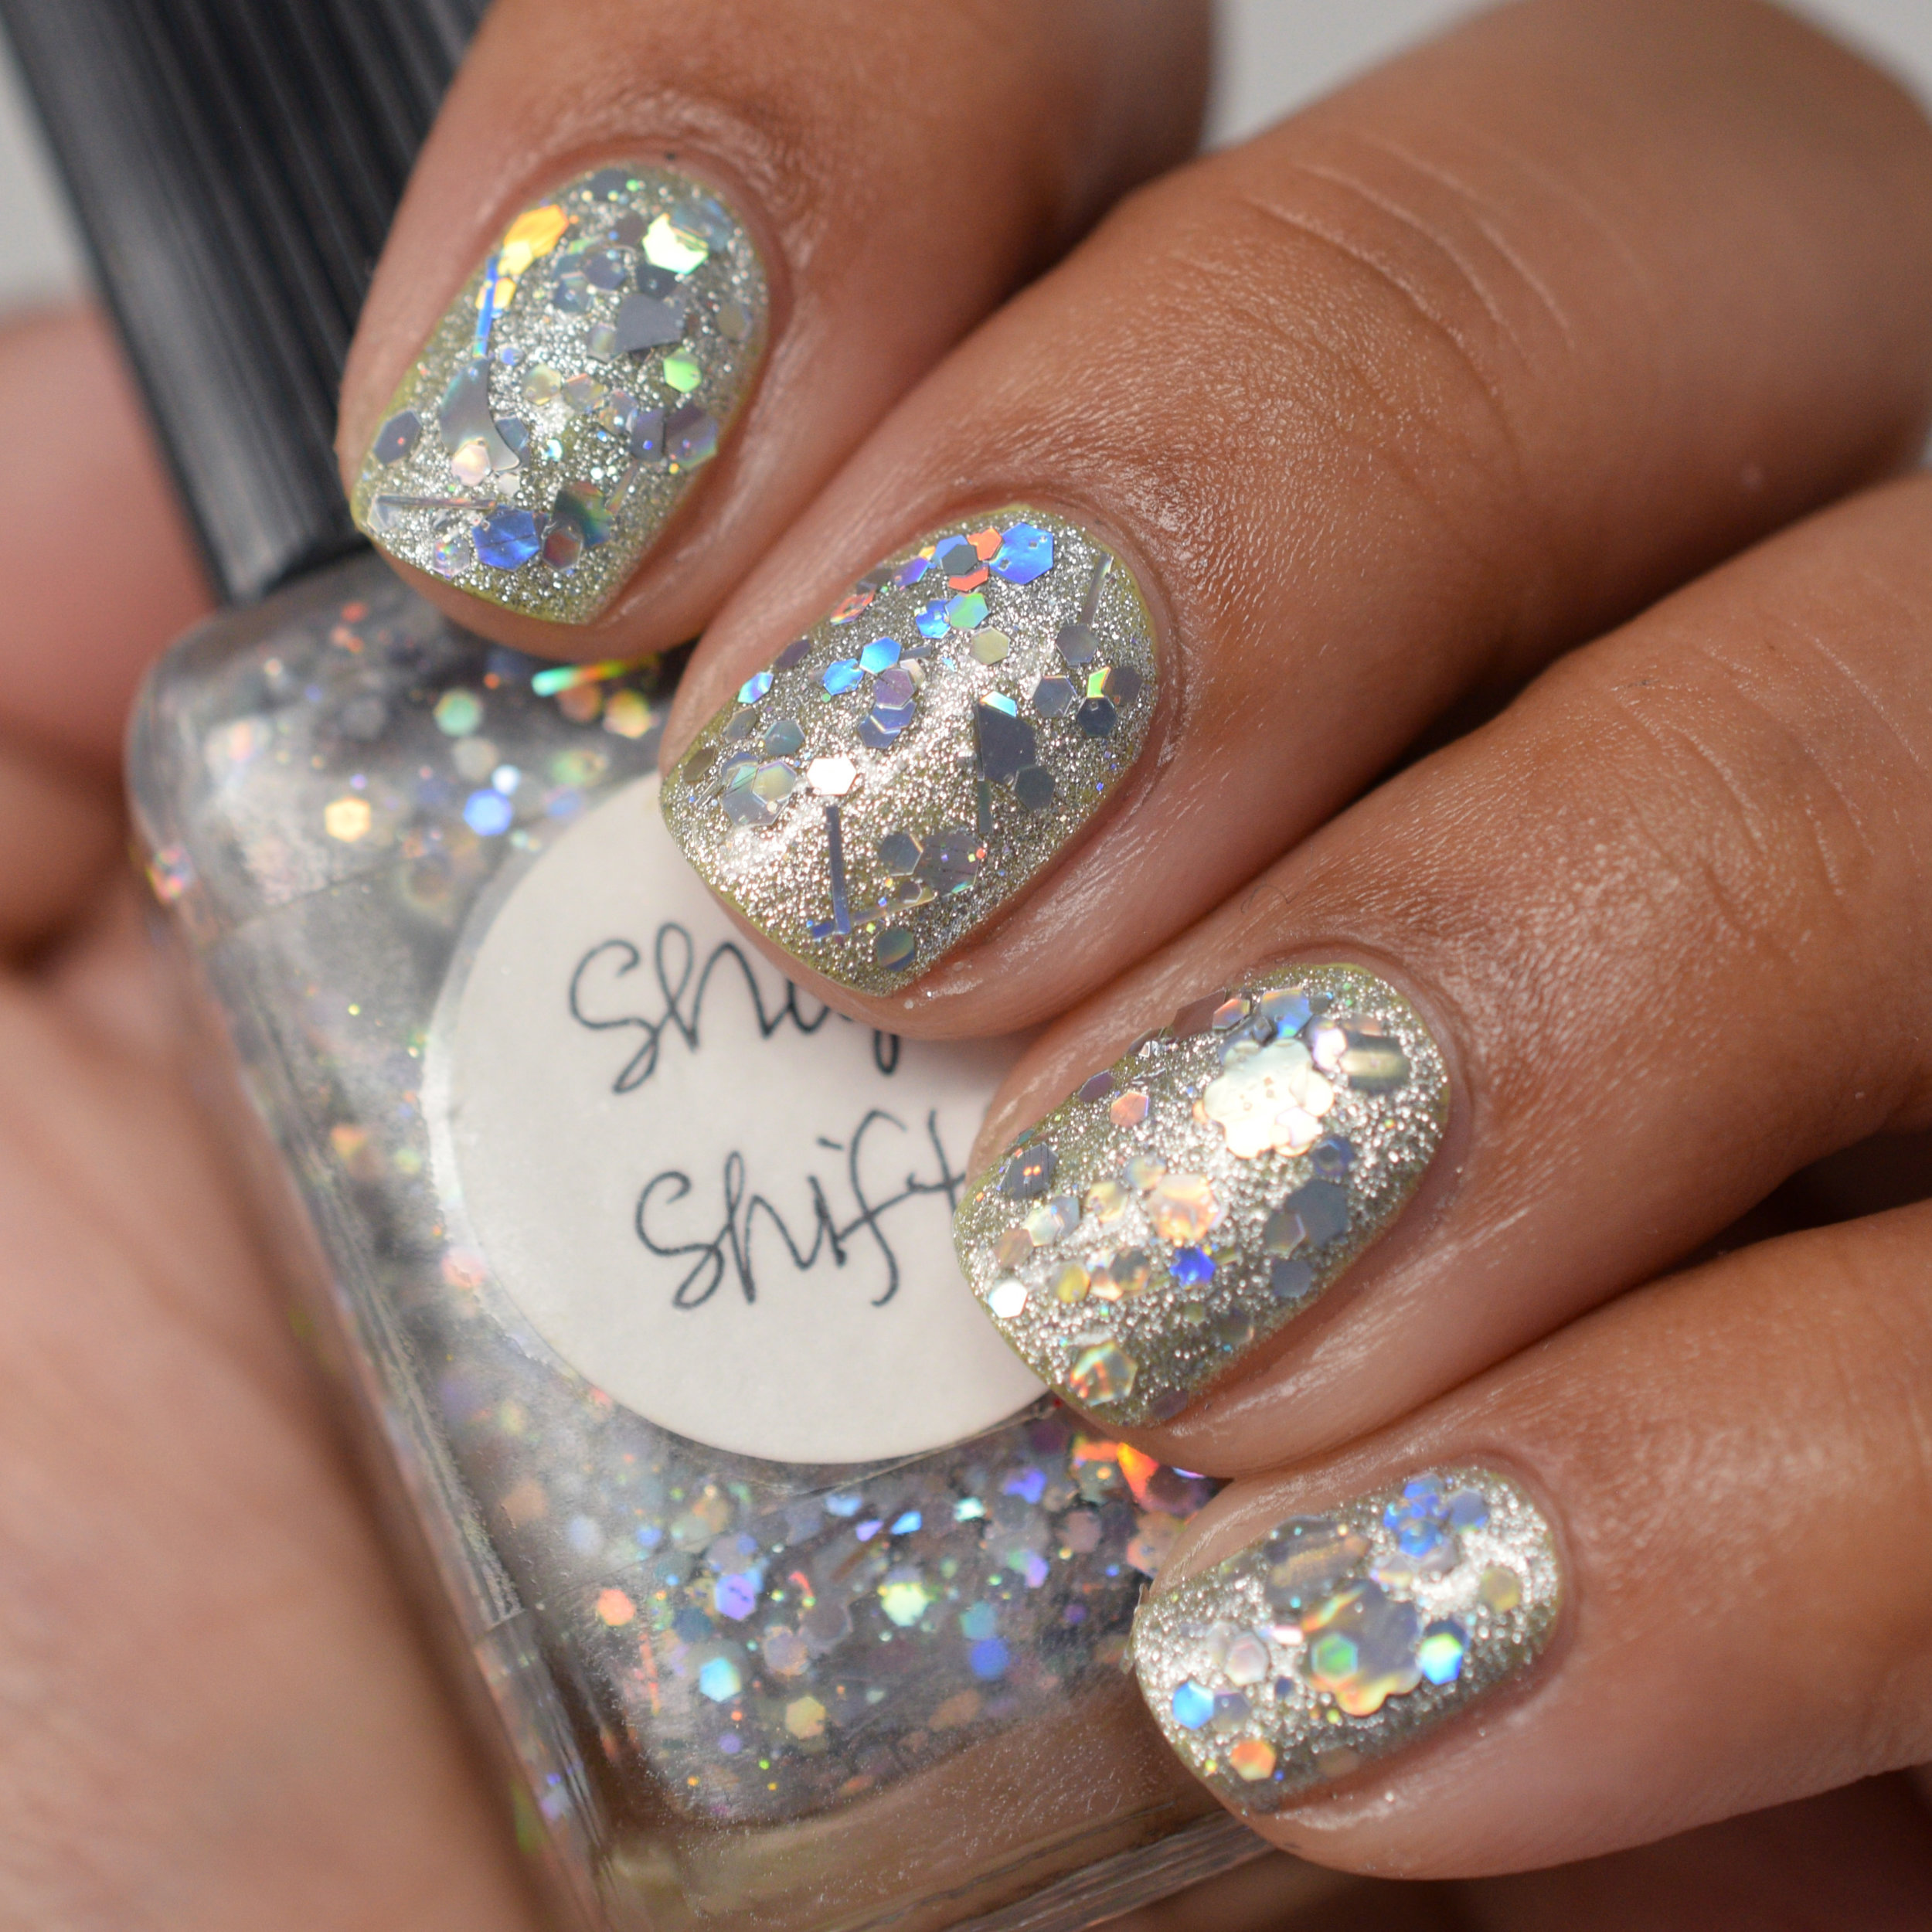 Shape Shifter over OPI This Gown Needs A Crown.jpg